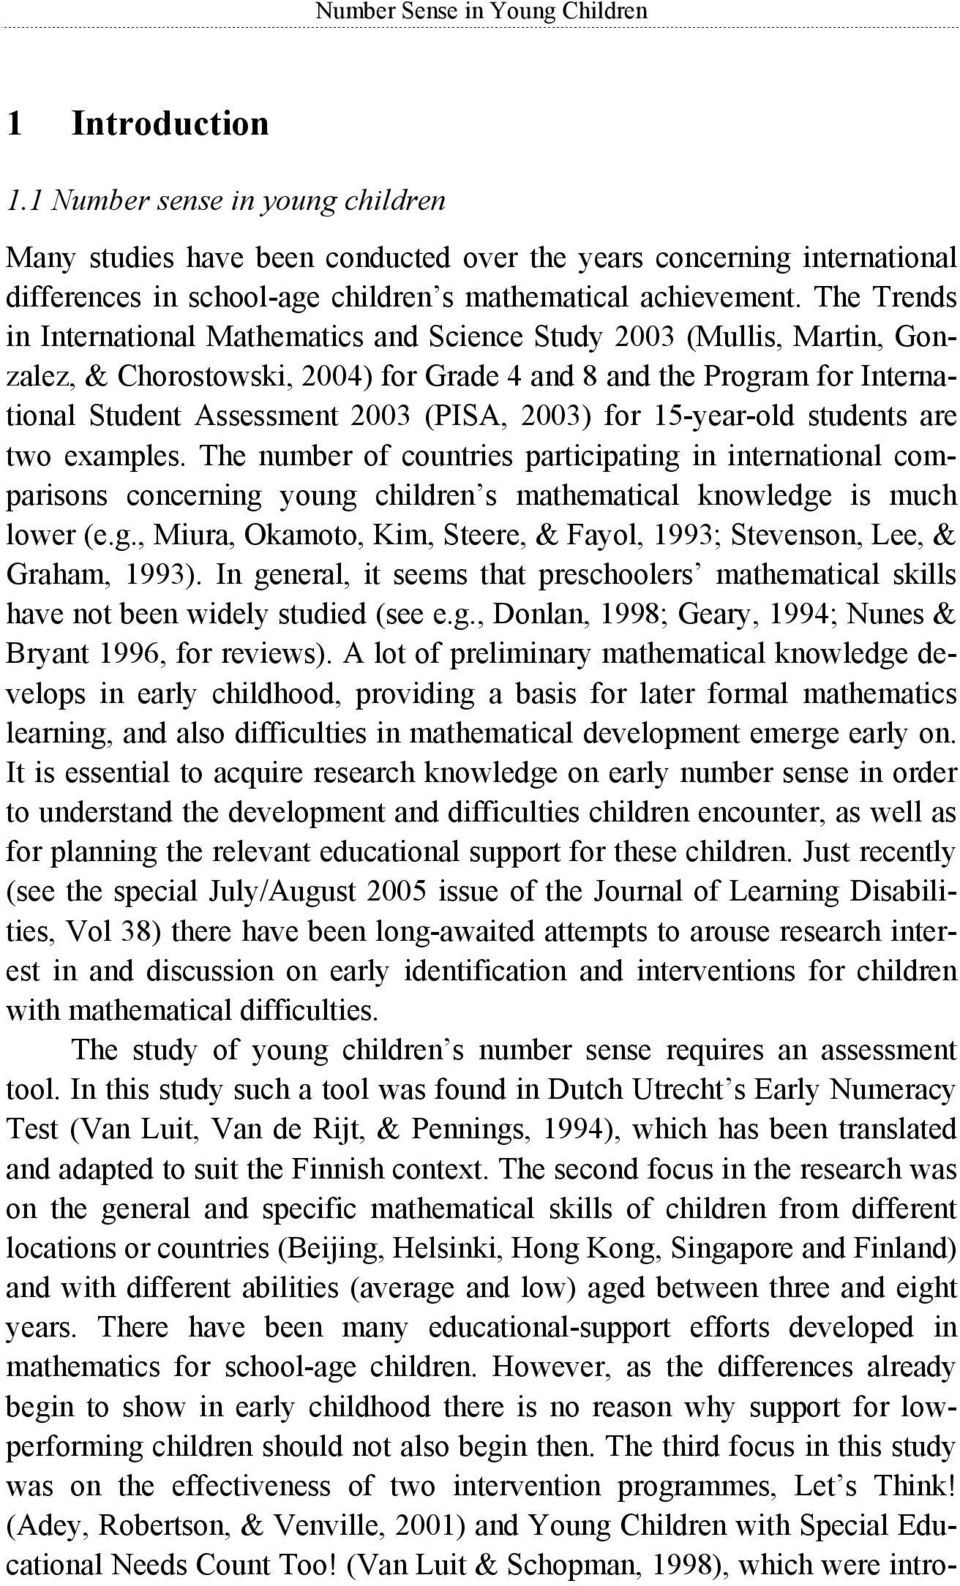 The Trends in International Mathematics and Science Study 2003 (Mullis, Martin, Gonzalez, & Chorostowski, 2004) for Grade 4 and 8 and the Program for International Student Assessment 2003 (PISA,